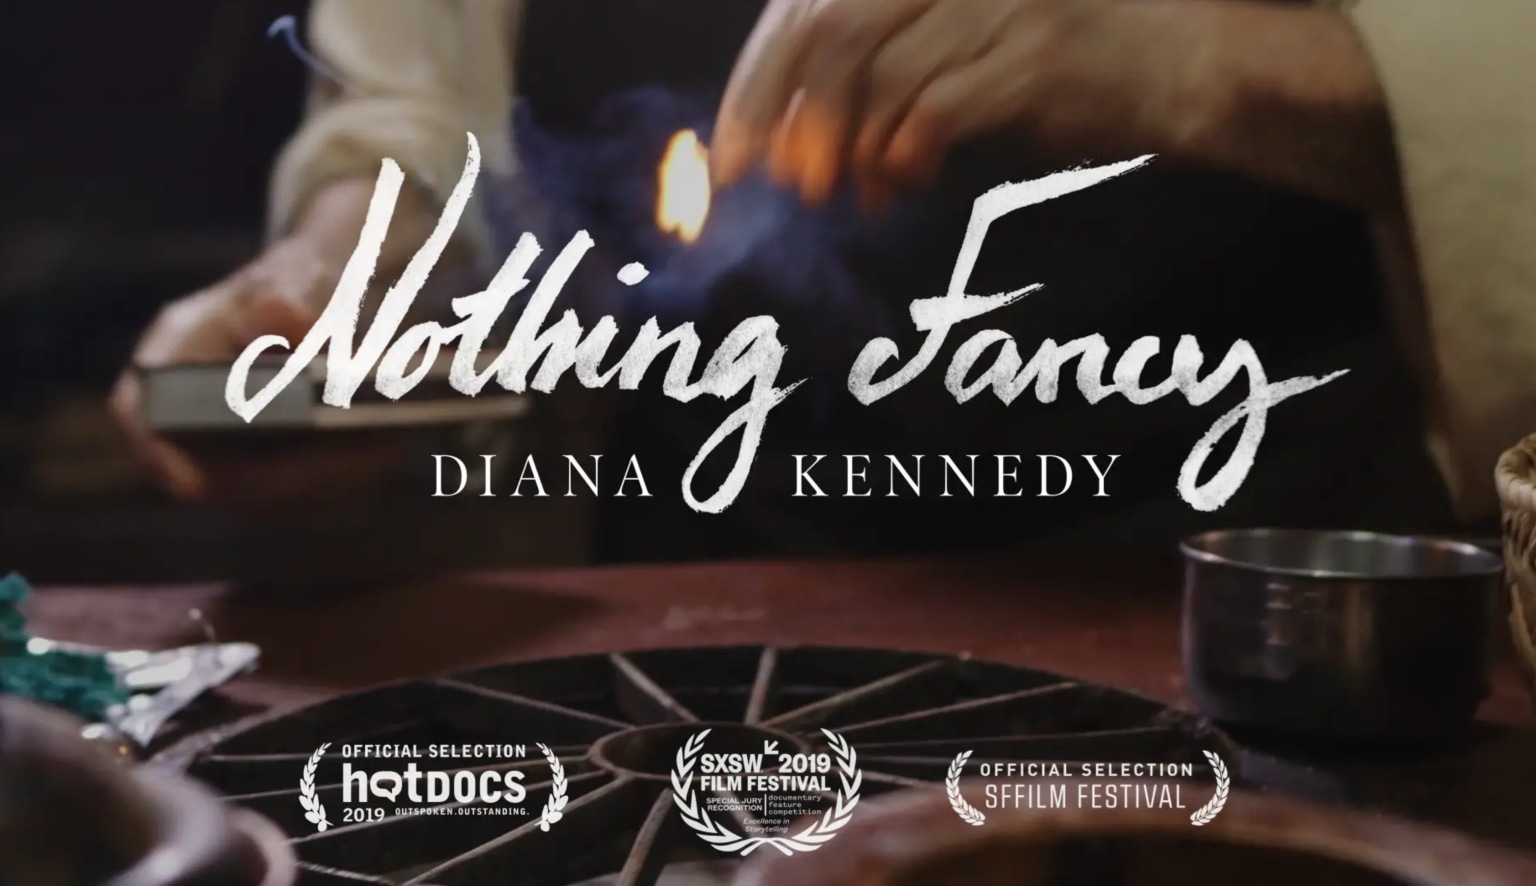 Nothing Fancy: Diana Kennedy (Feature Documentary)